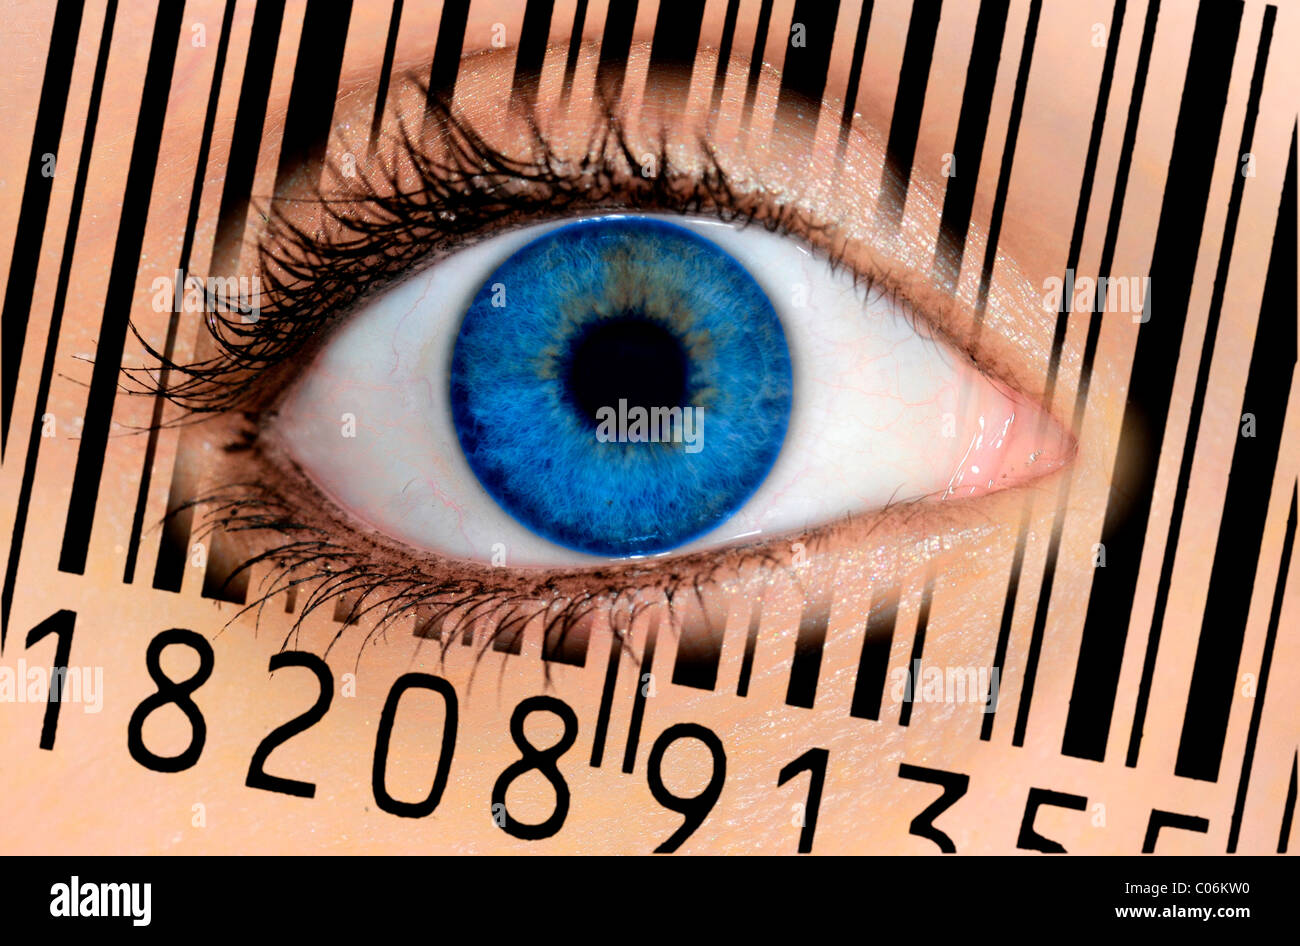 Detail of an eye with a blue iris and an EAN barcode, European Article Number, symbolic image for the see-through - Stock Image